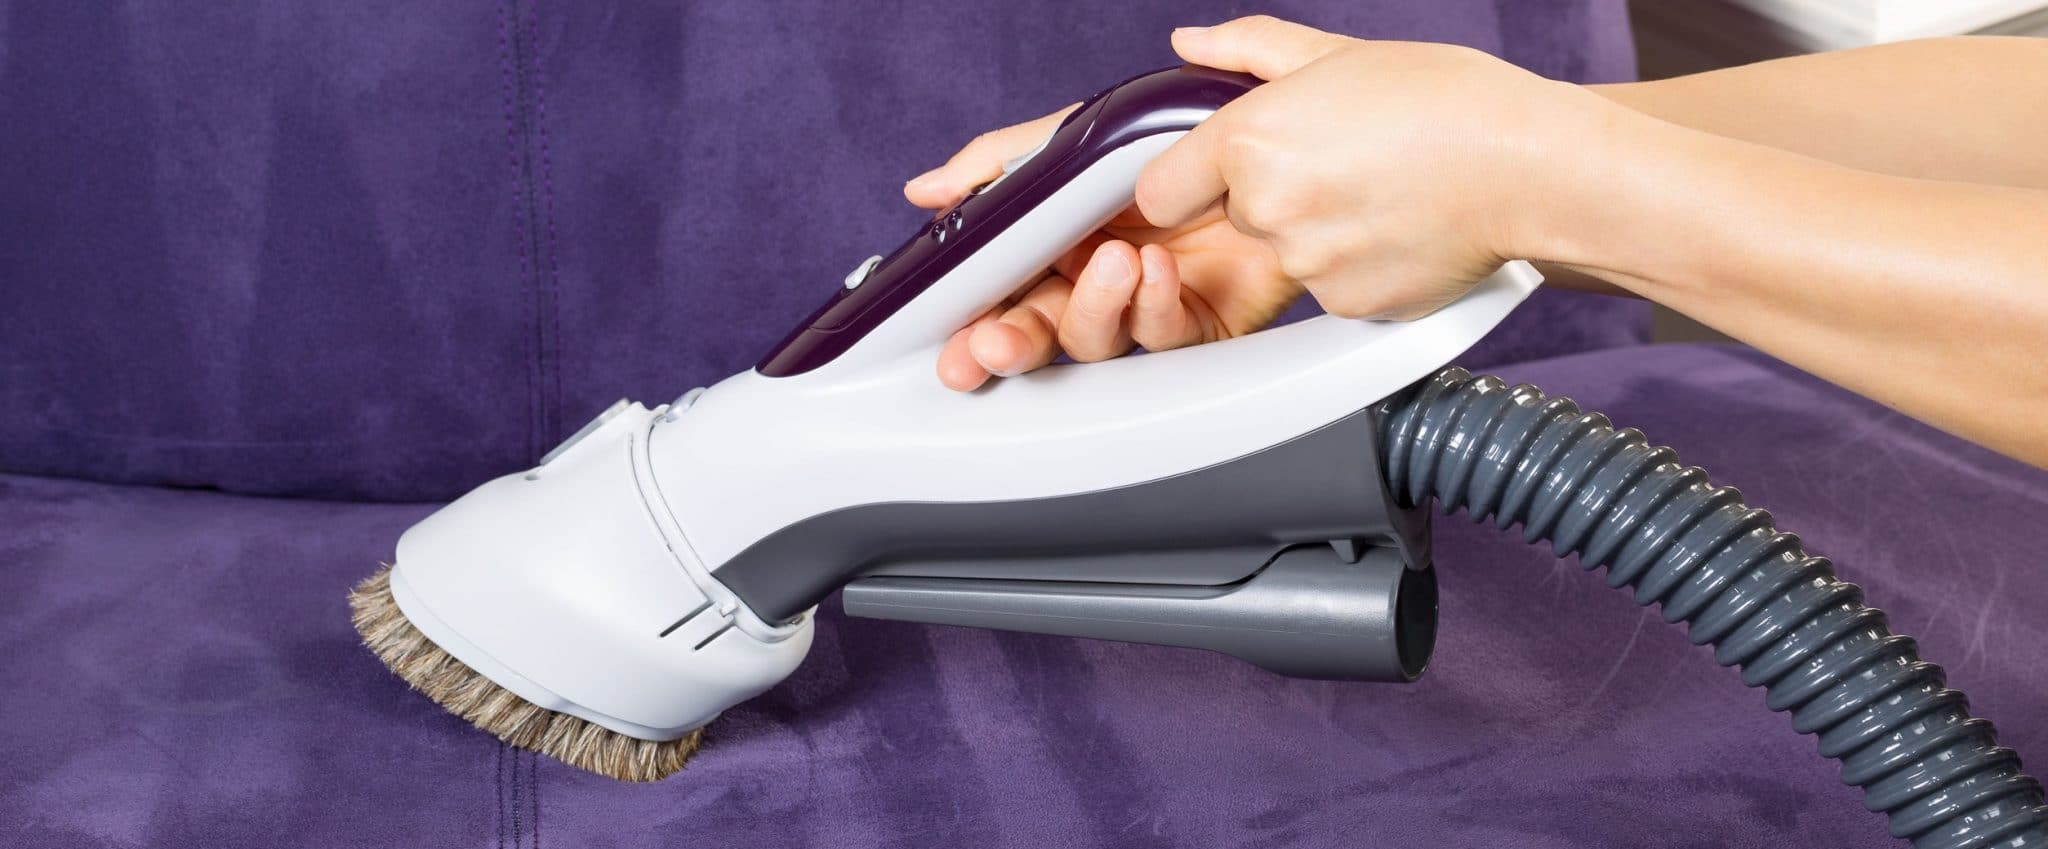 Female hands holding vacuum cleaner extension for cleaning suede leather couch